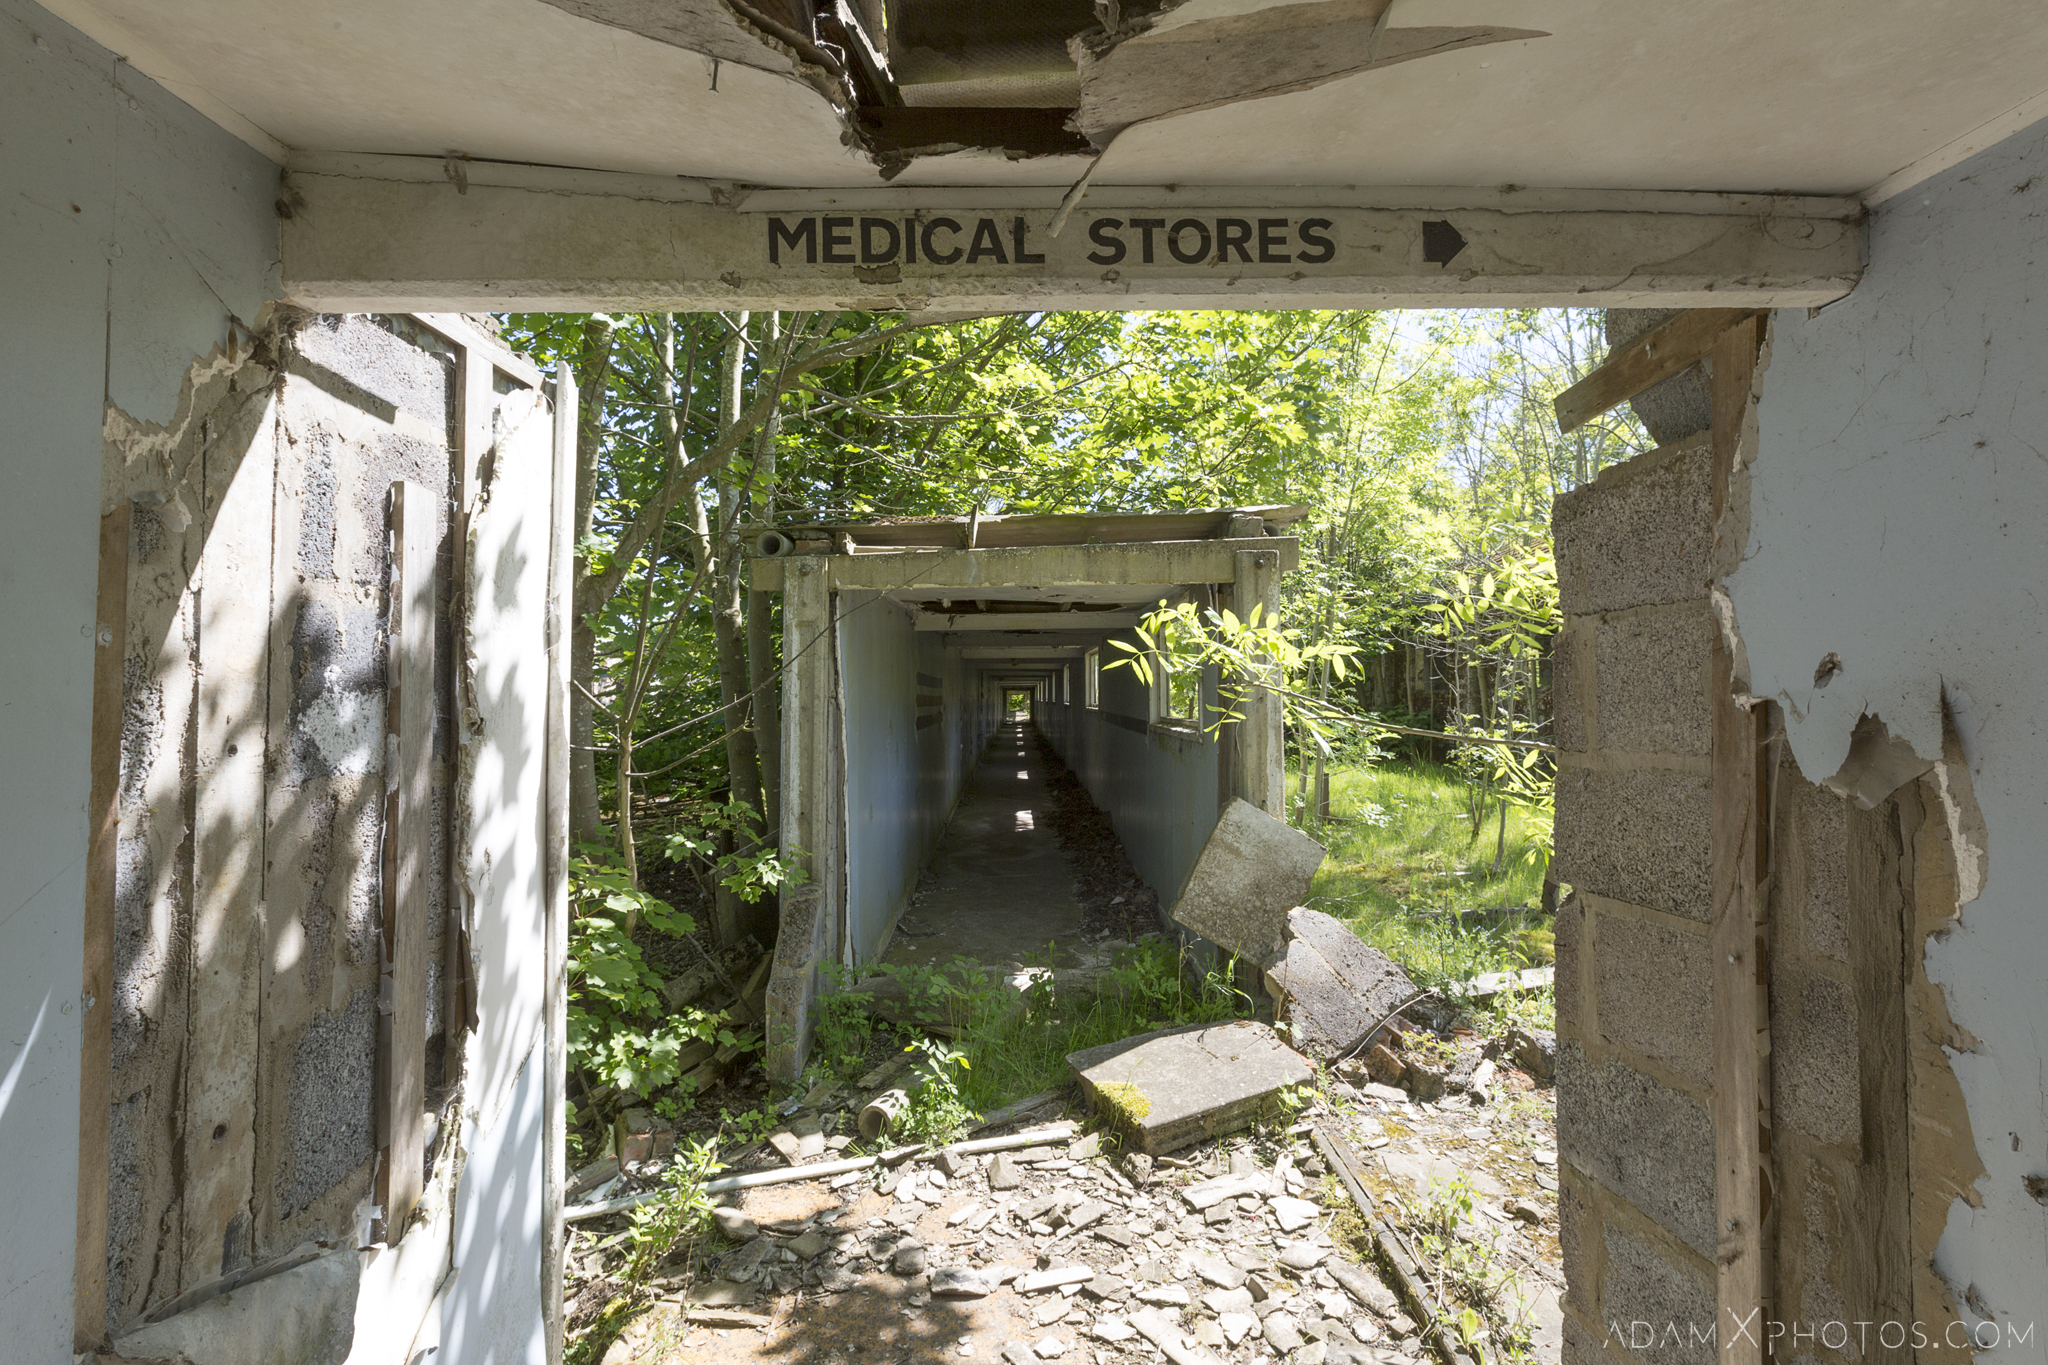 Medical stores Nocton Hall RAF Hospital Lincolnshire Adam X Urbex Urban Exploration Access 2018 Abandoned decay lost forgotten derelict location creepy haunting eerie